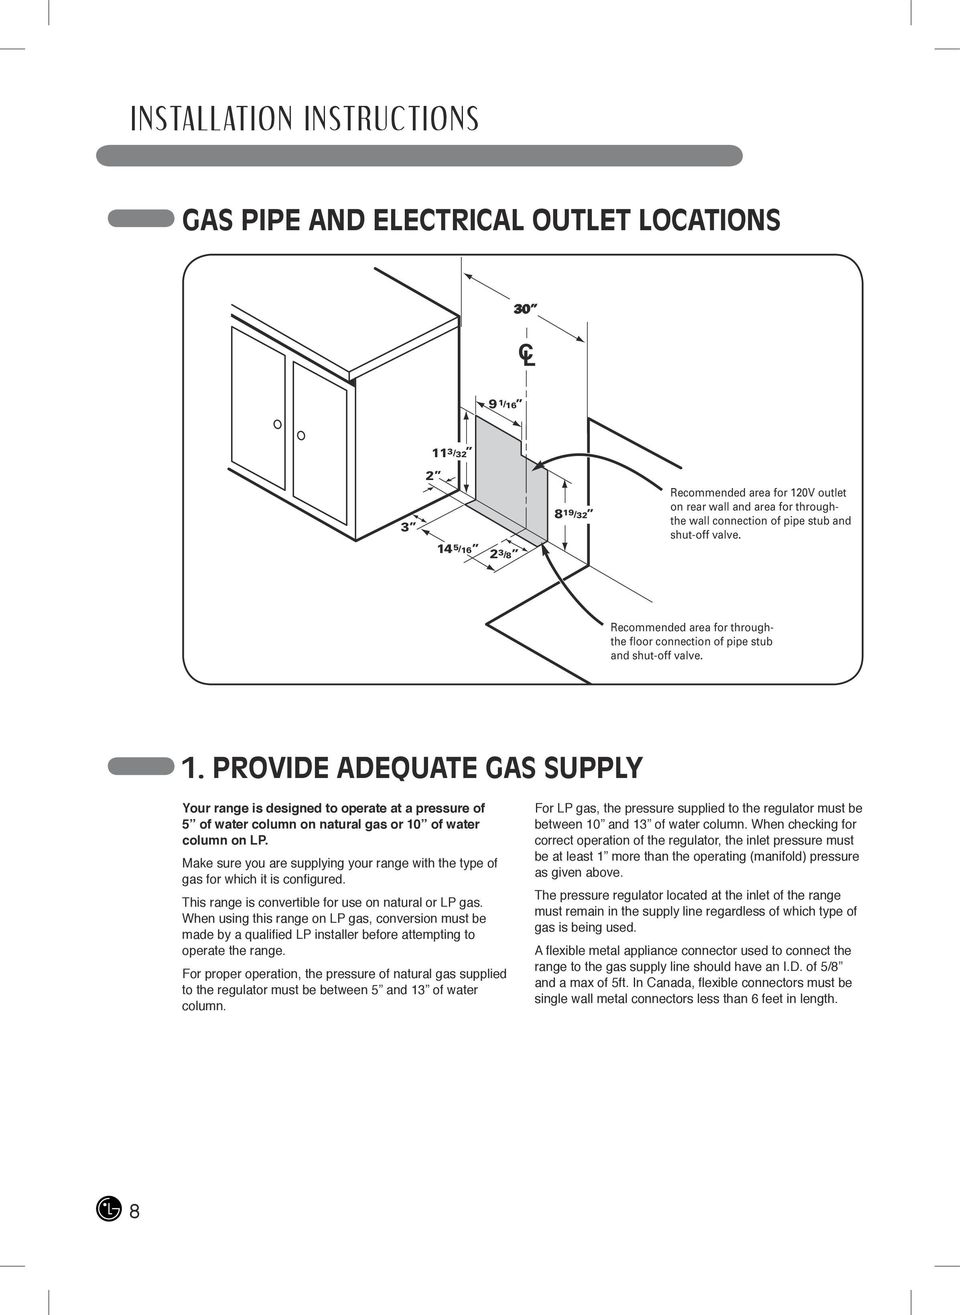 PROVIDE ADEQUATE GAS SUPPLY Your range is designed to operate at a pressure of 5 of water column on natural gas or 10 of water column on LP.